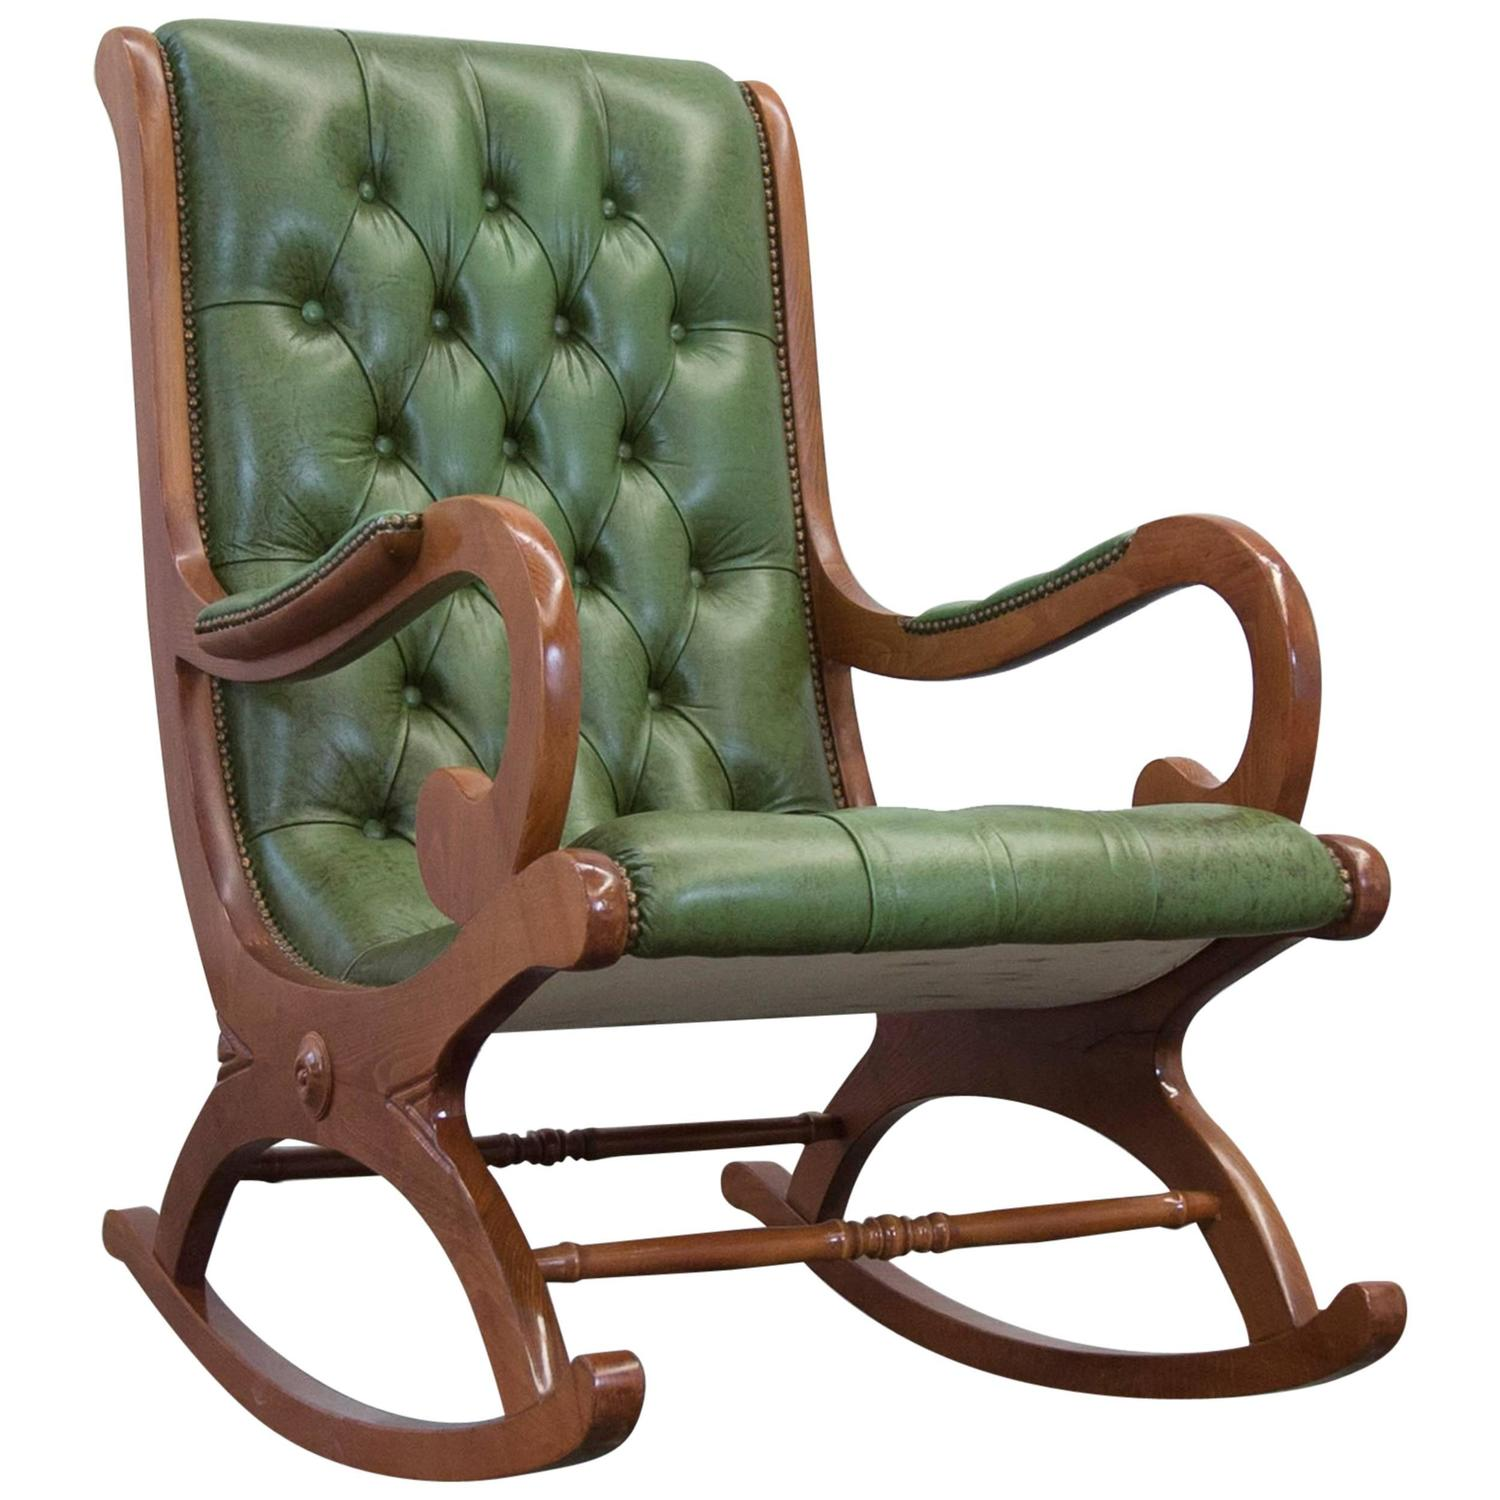 Antique rocking chairs - Vintage Chesterfield Rocking Chair In Green Leather